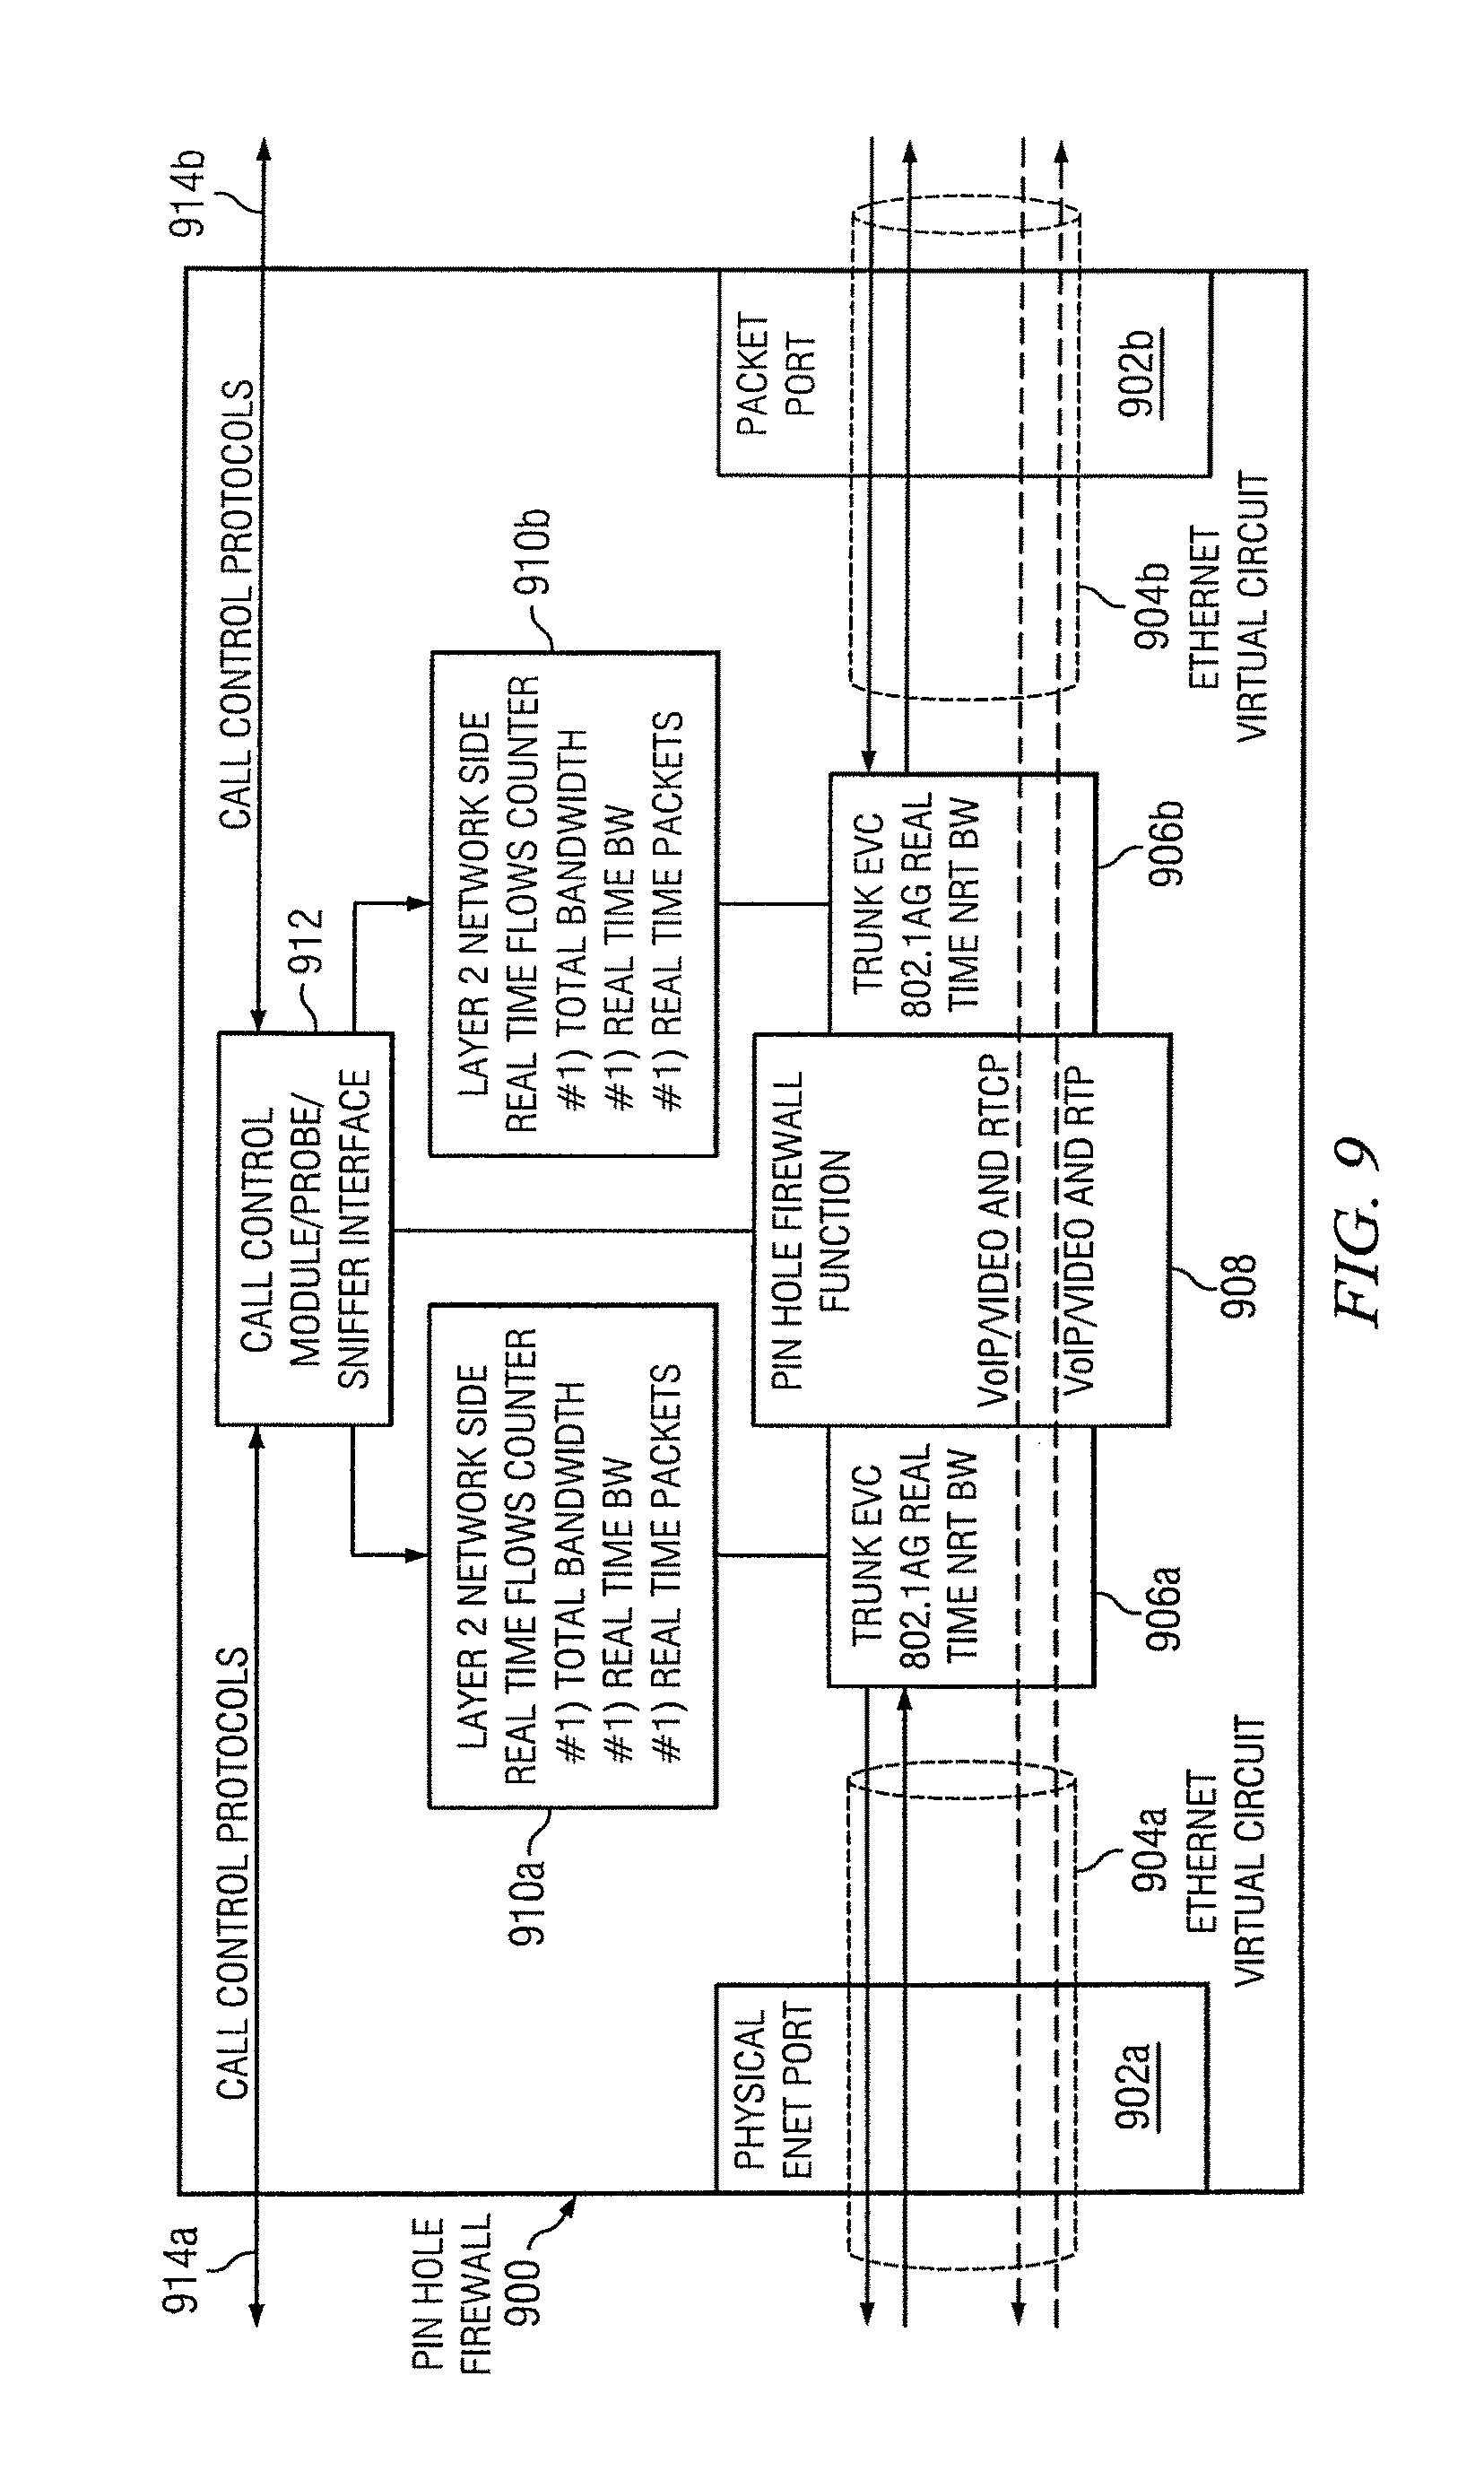 Patent Us 9992348 B2 The Basic 2 Digit Up Down Counter Circuit Full